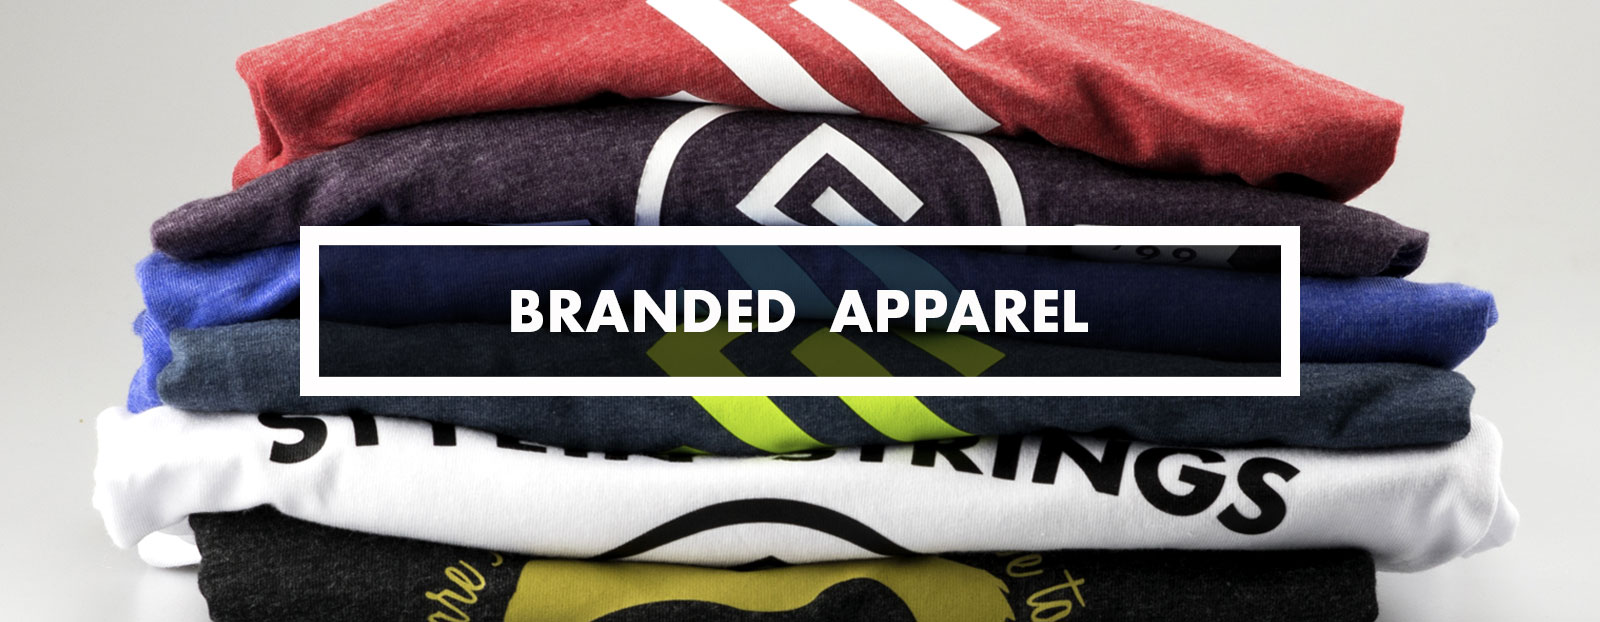 Category - apparel - branded